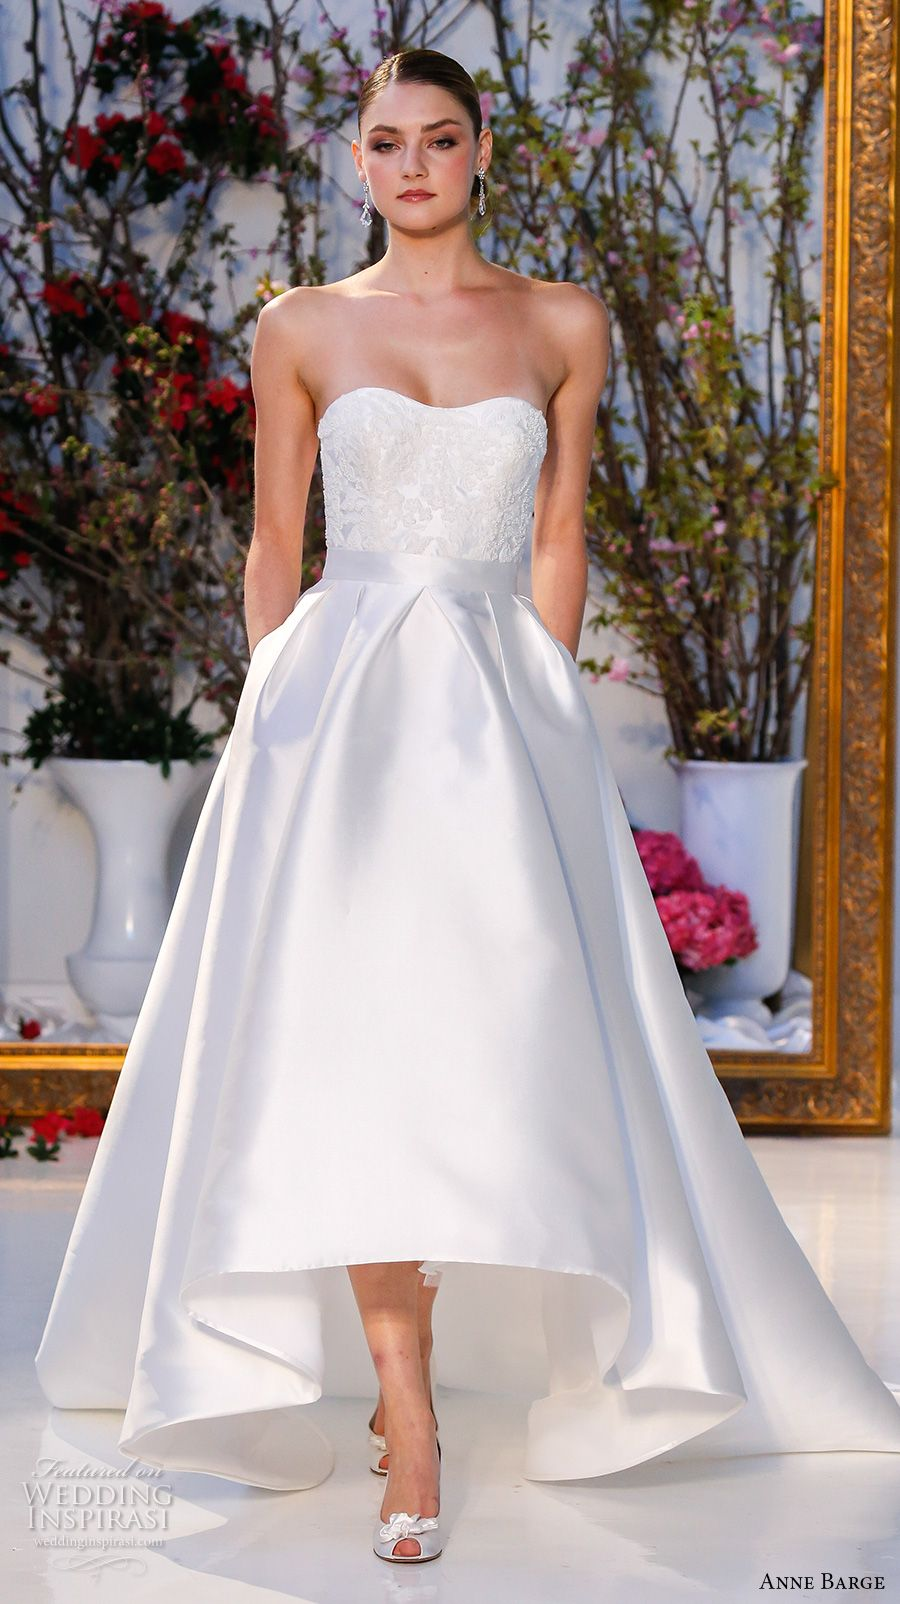 Anne barge spring wedding dresses anne barge chapel train